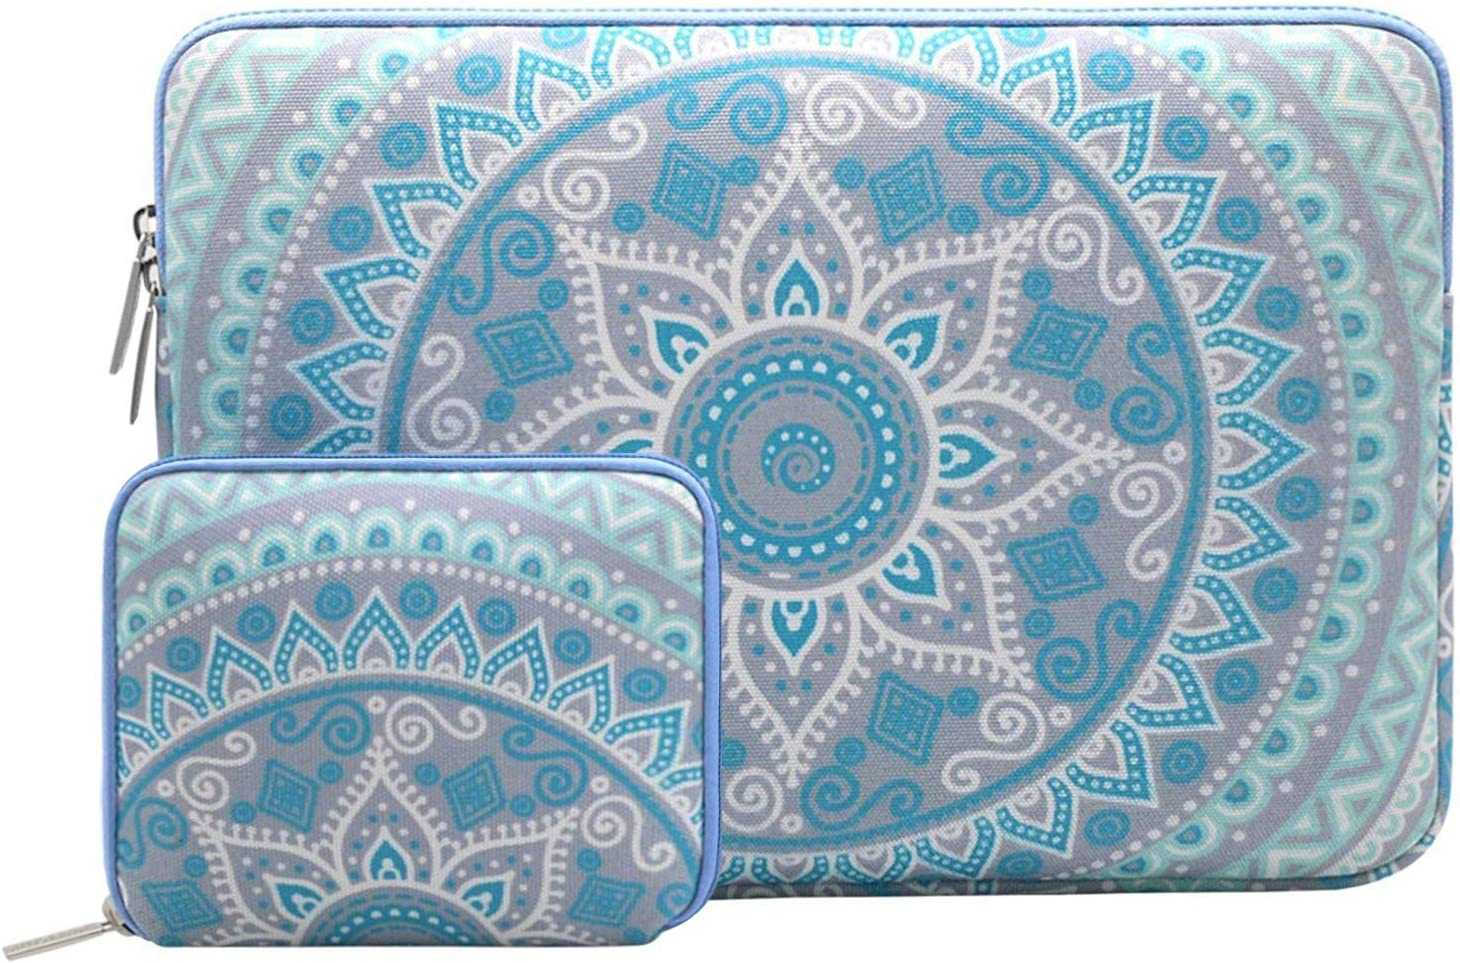 MOSISO Laptop Sleeve Compatible with 13-13.3 inch MacBook Pro, MacBook Air, Notebook Computer, Carrying Bag Cover with Small Case Mandala MO-MDL004